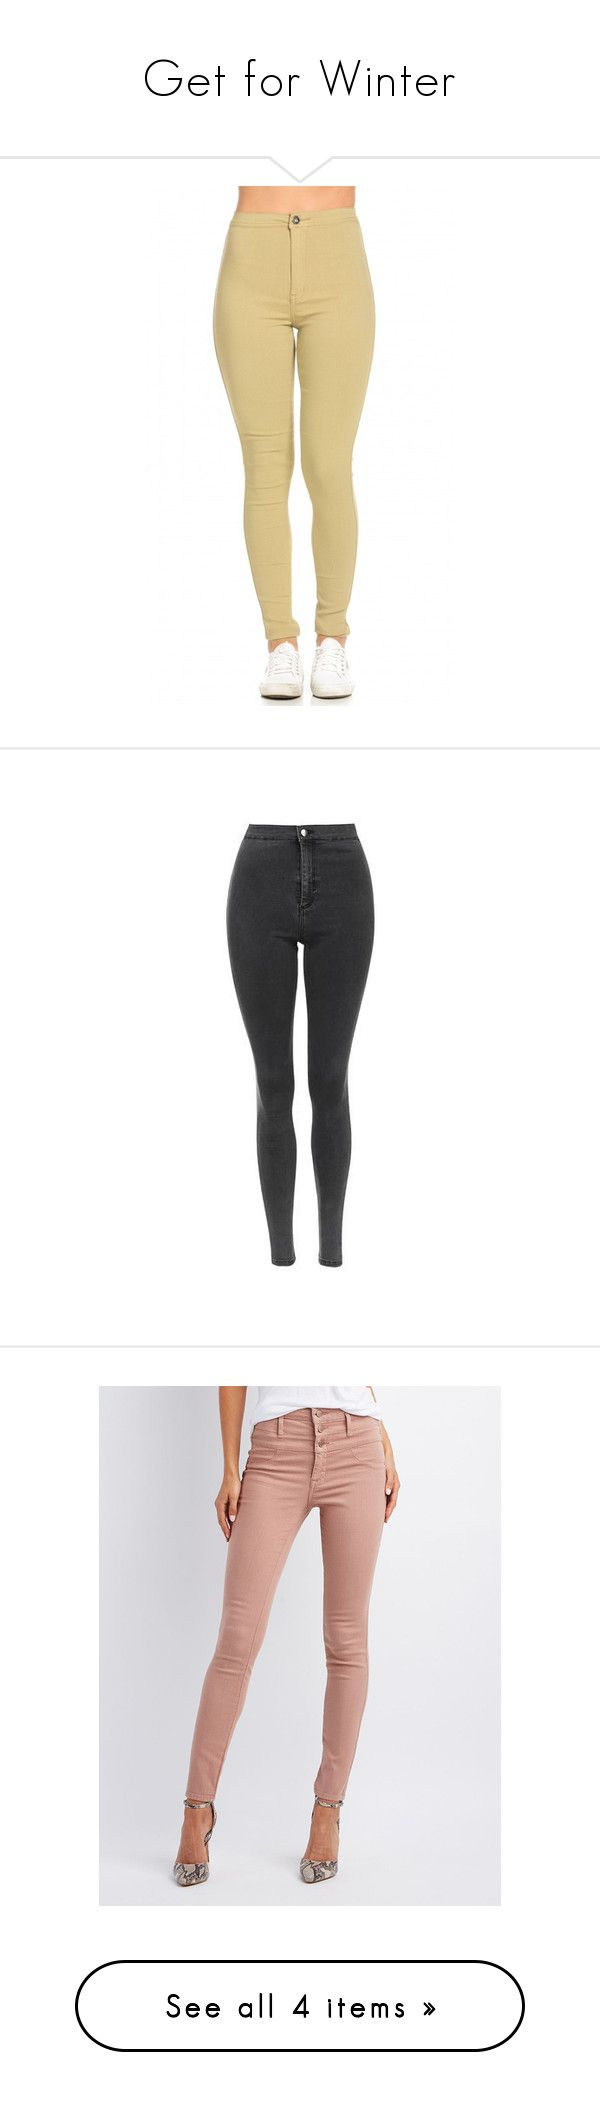 """Get for Winter"" by madamshante17 ❤ liked on Polyvore featuring jeans, bottoms, pants, high waisted stretch skinny jeans, khaki skinny jeans, high waisted khaki skinny jeans, khaki high waisted jeans, high-waisted skinny jeans, grey and super high-waisted skinny jeans"